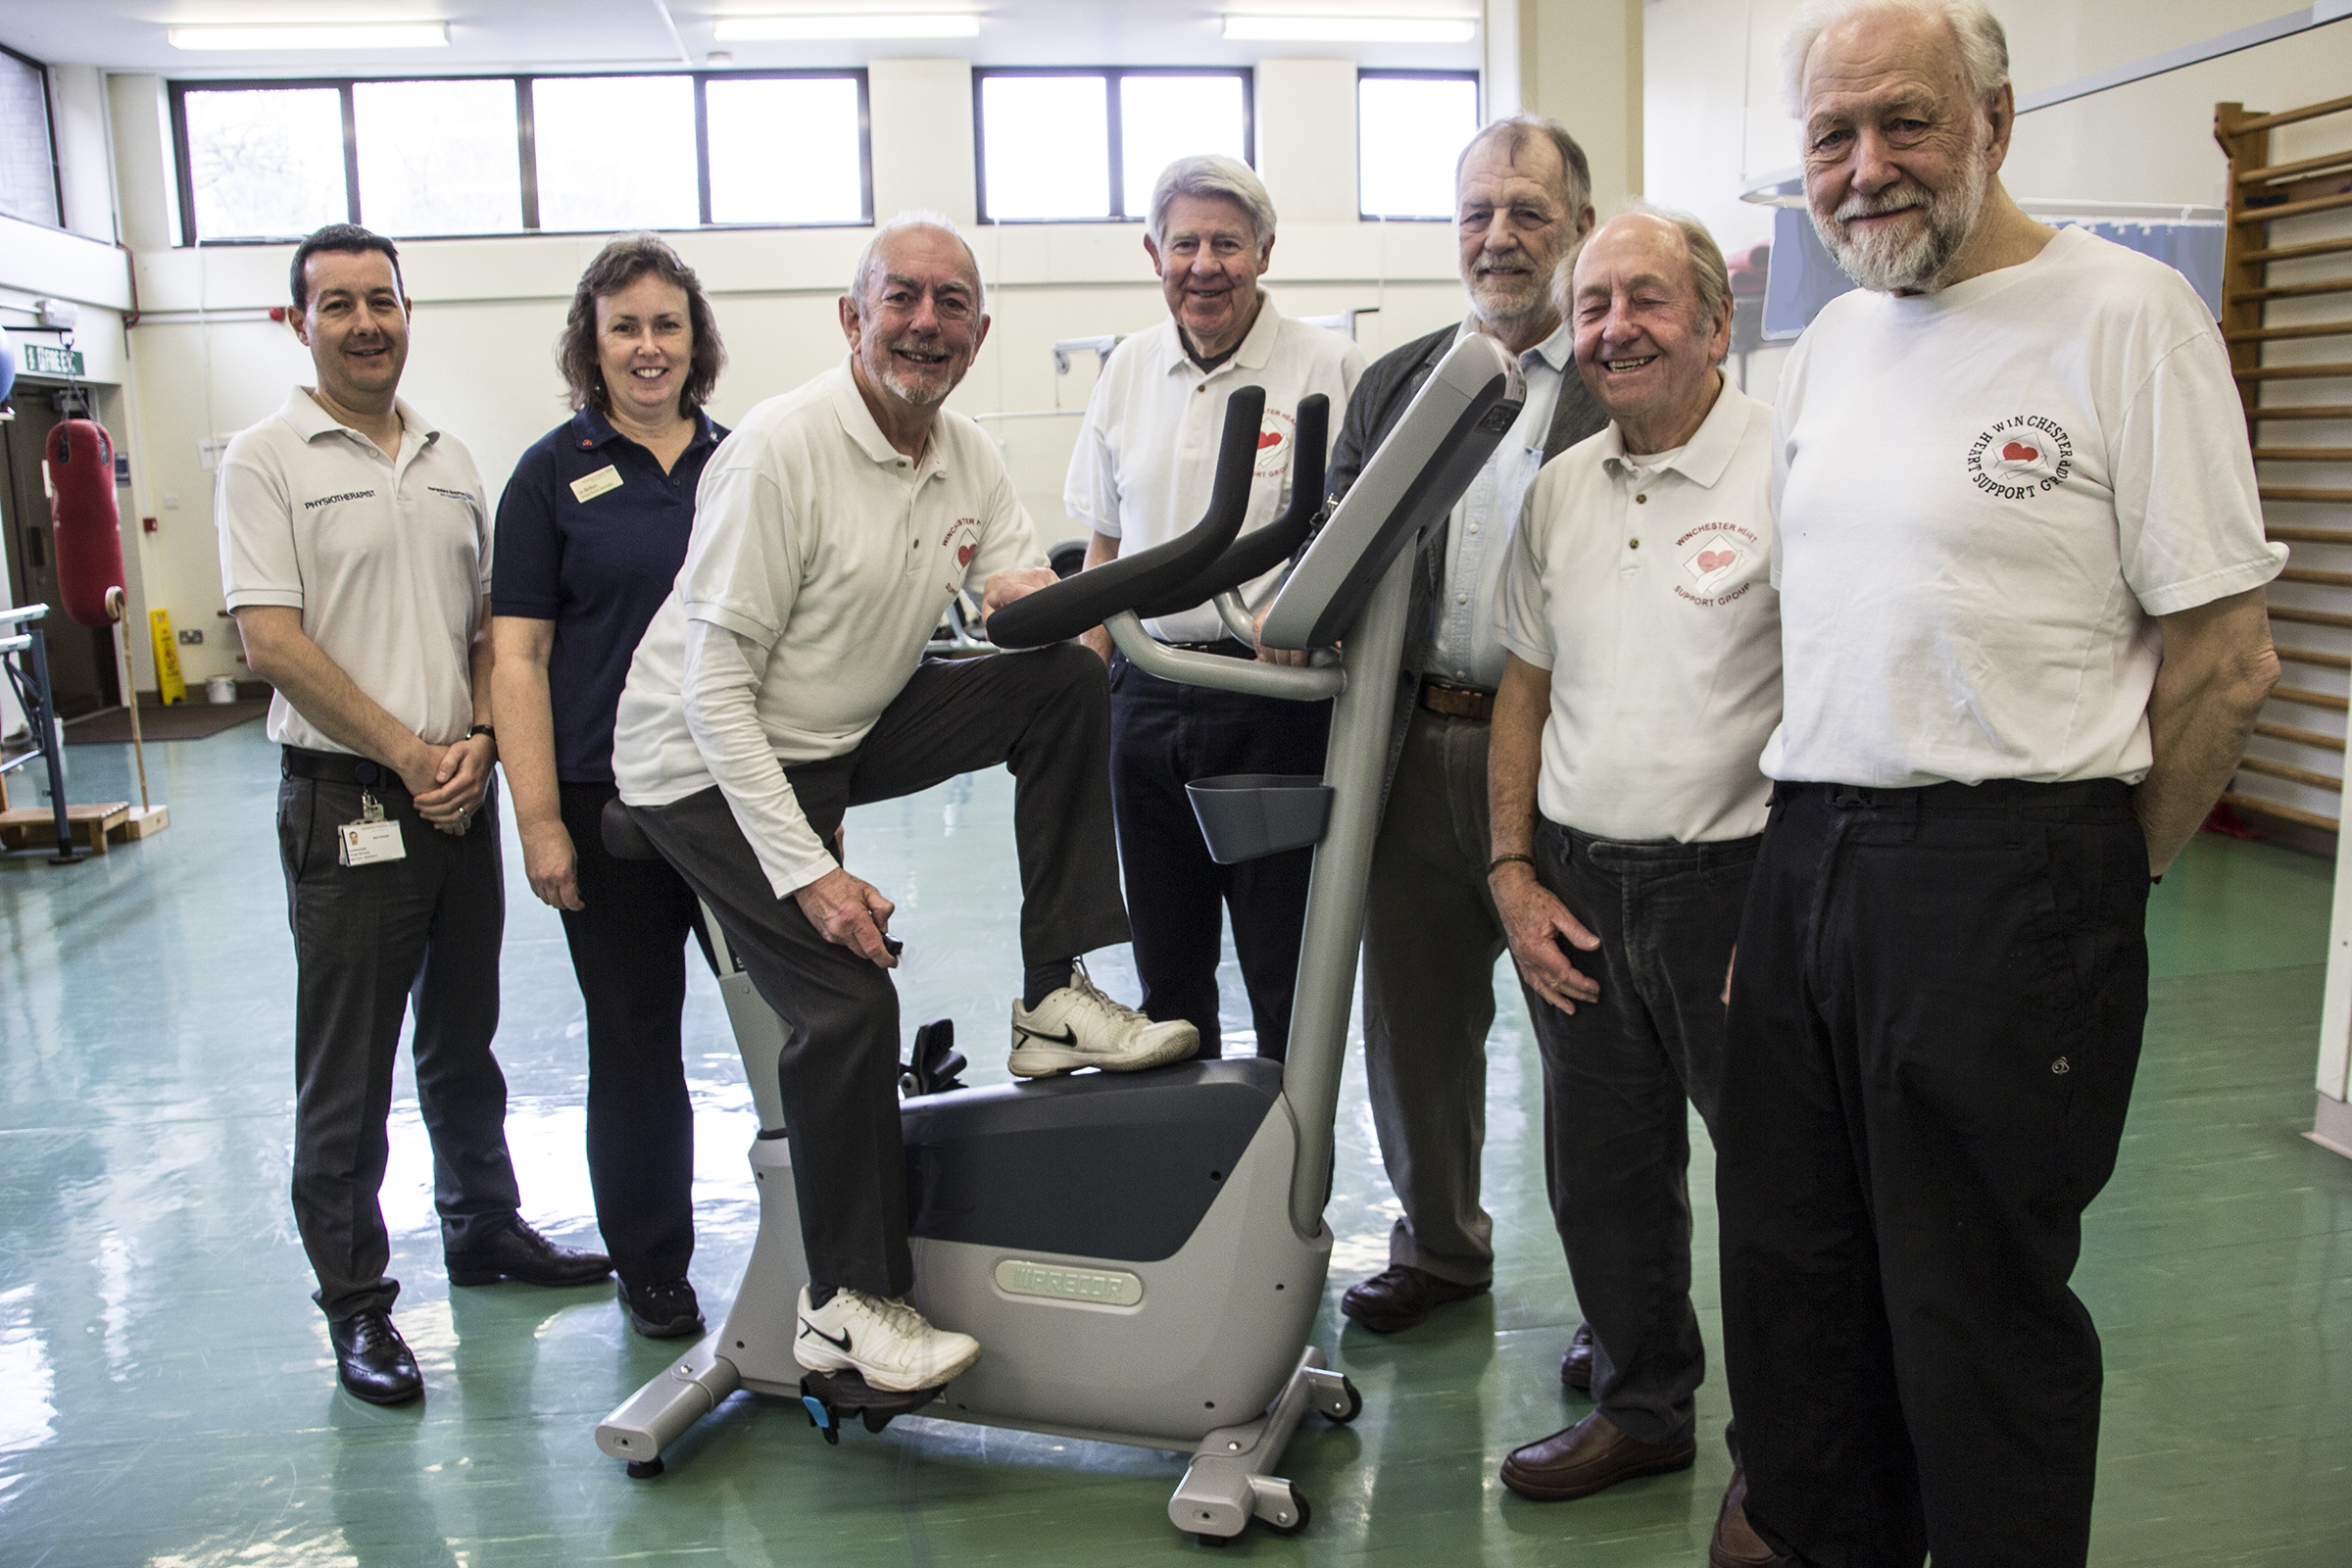 Winchester Heart Support Group present an exercise bike to The Royal Hampshire County Hospital from left: Mark Randall – RHCH Senior Physiotherapist Liz Britton – RHCH Cardiac Rehab Lead Jim Finch –WHSG Deputy Chairman Robin Pope –